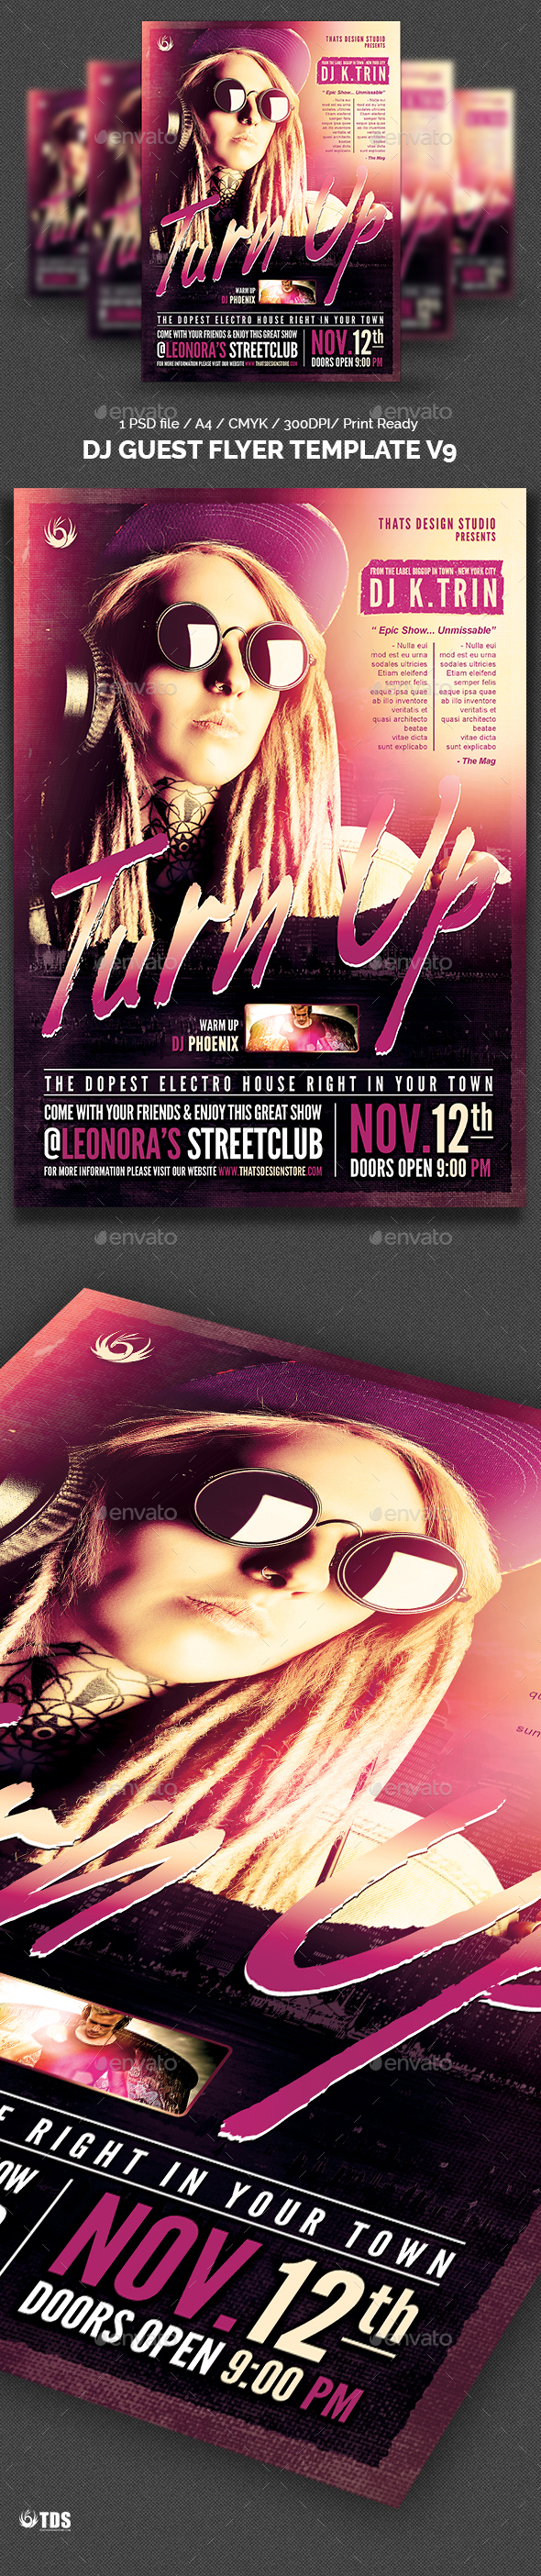 Dj Guest Flyer Template V9 - Clubs & Parties Events